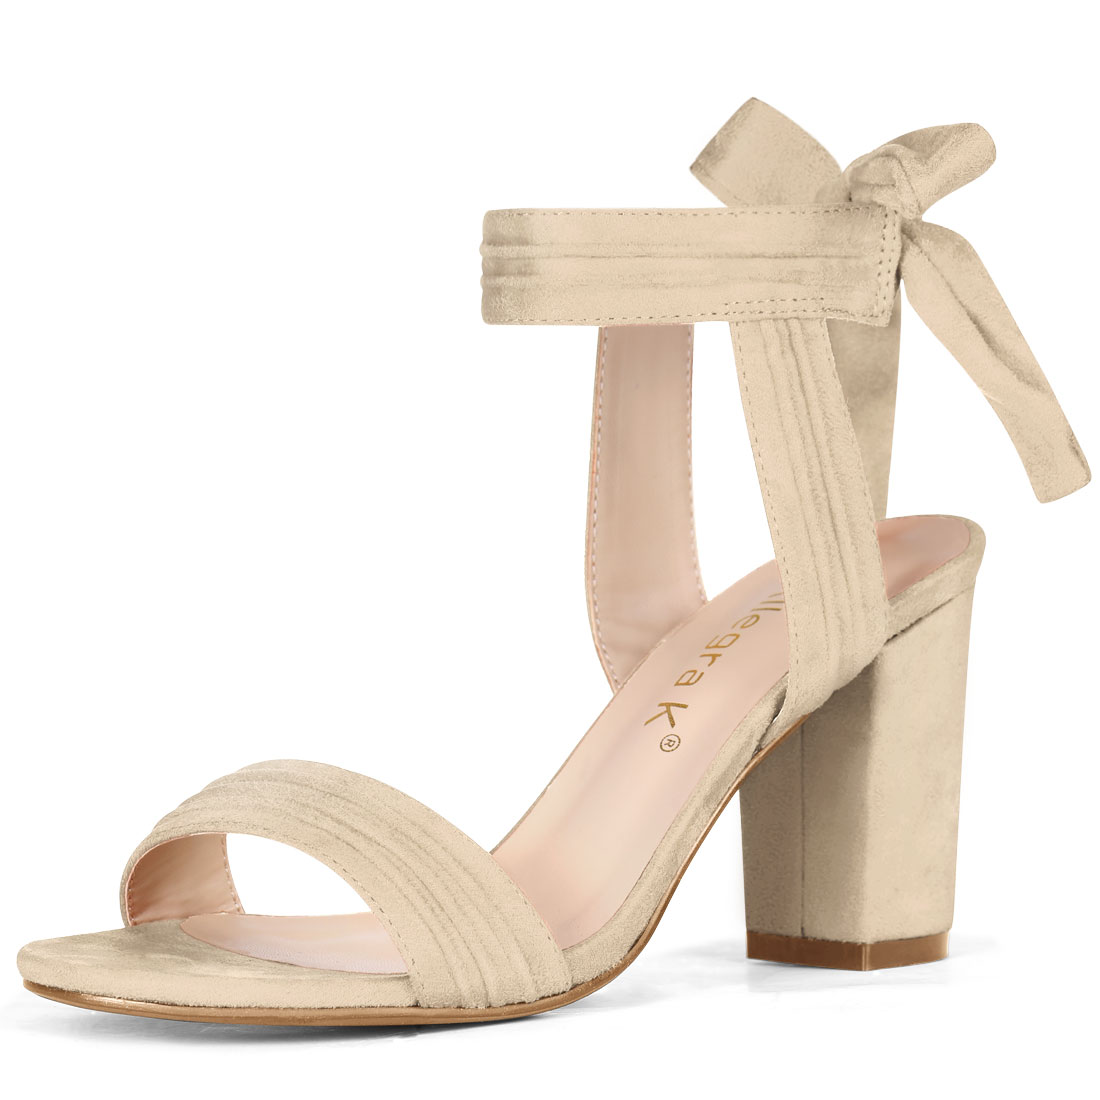 Unique Bargains Women's Ankle Tie Open Toe Block Heel Sandals Beige (Size 9.5) - image 7 of 7